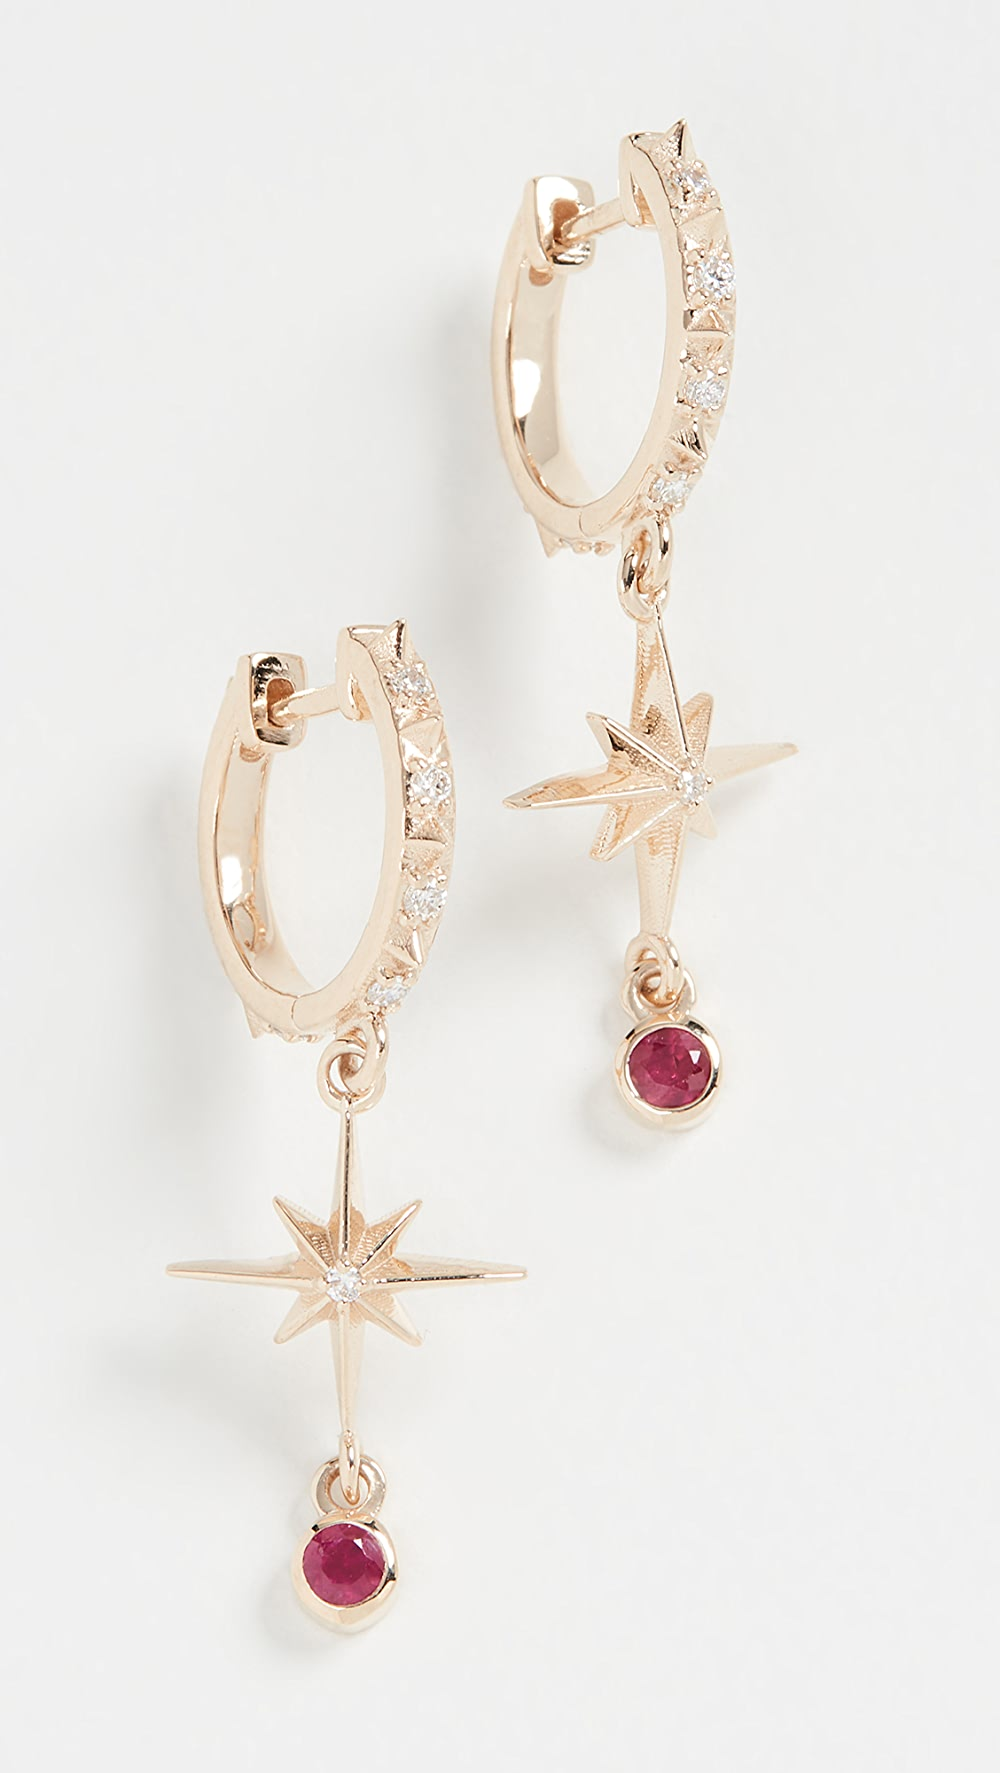 Bright Marlo Laz - 14k Lucky Star Hoop Earrings Goods Of Every Description Are Available